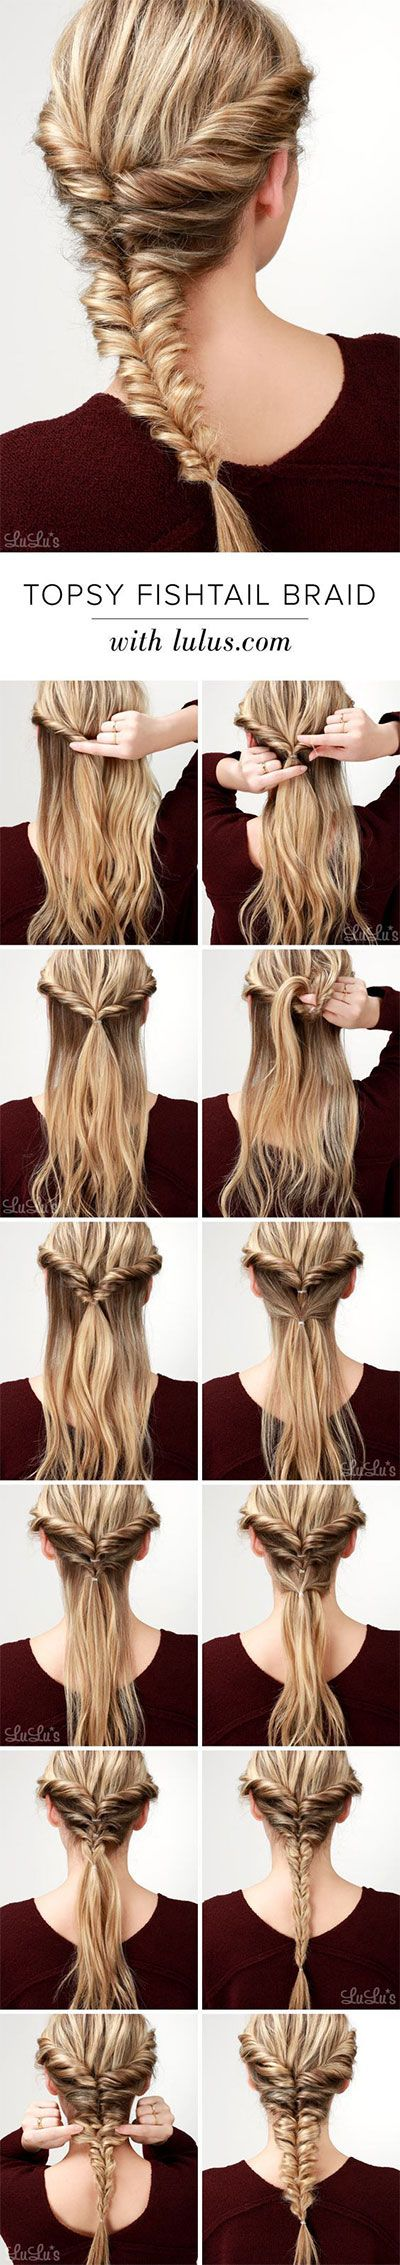 12-Step-By-Step-Summer-Hairstyle-Braids-Tutorials-2016-1